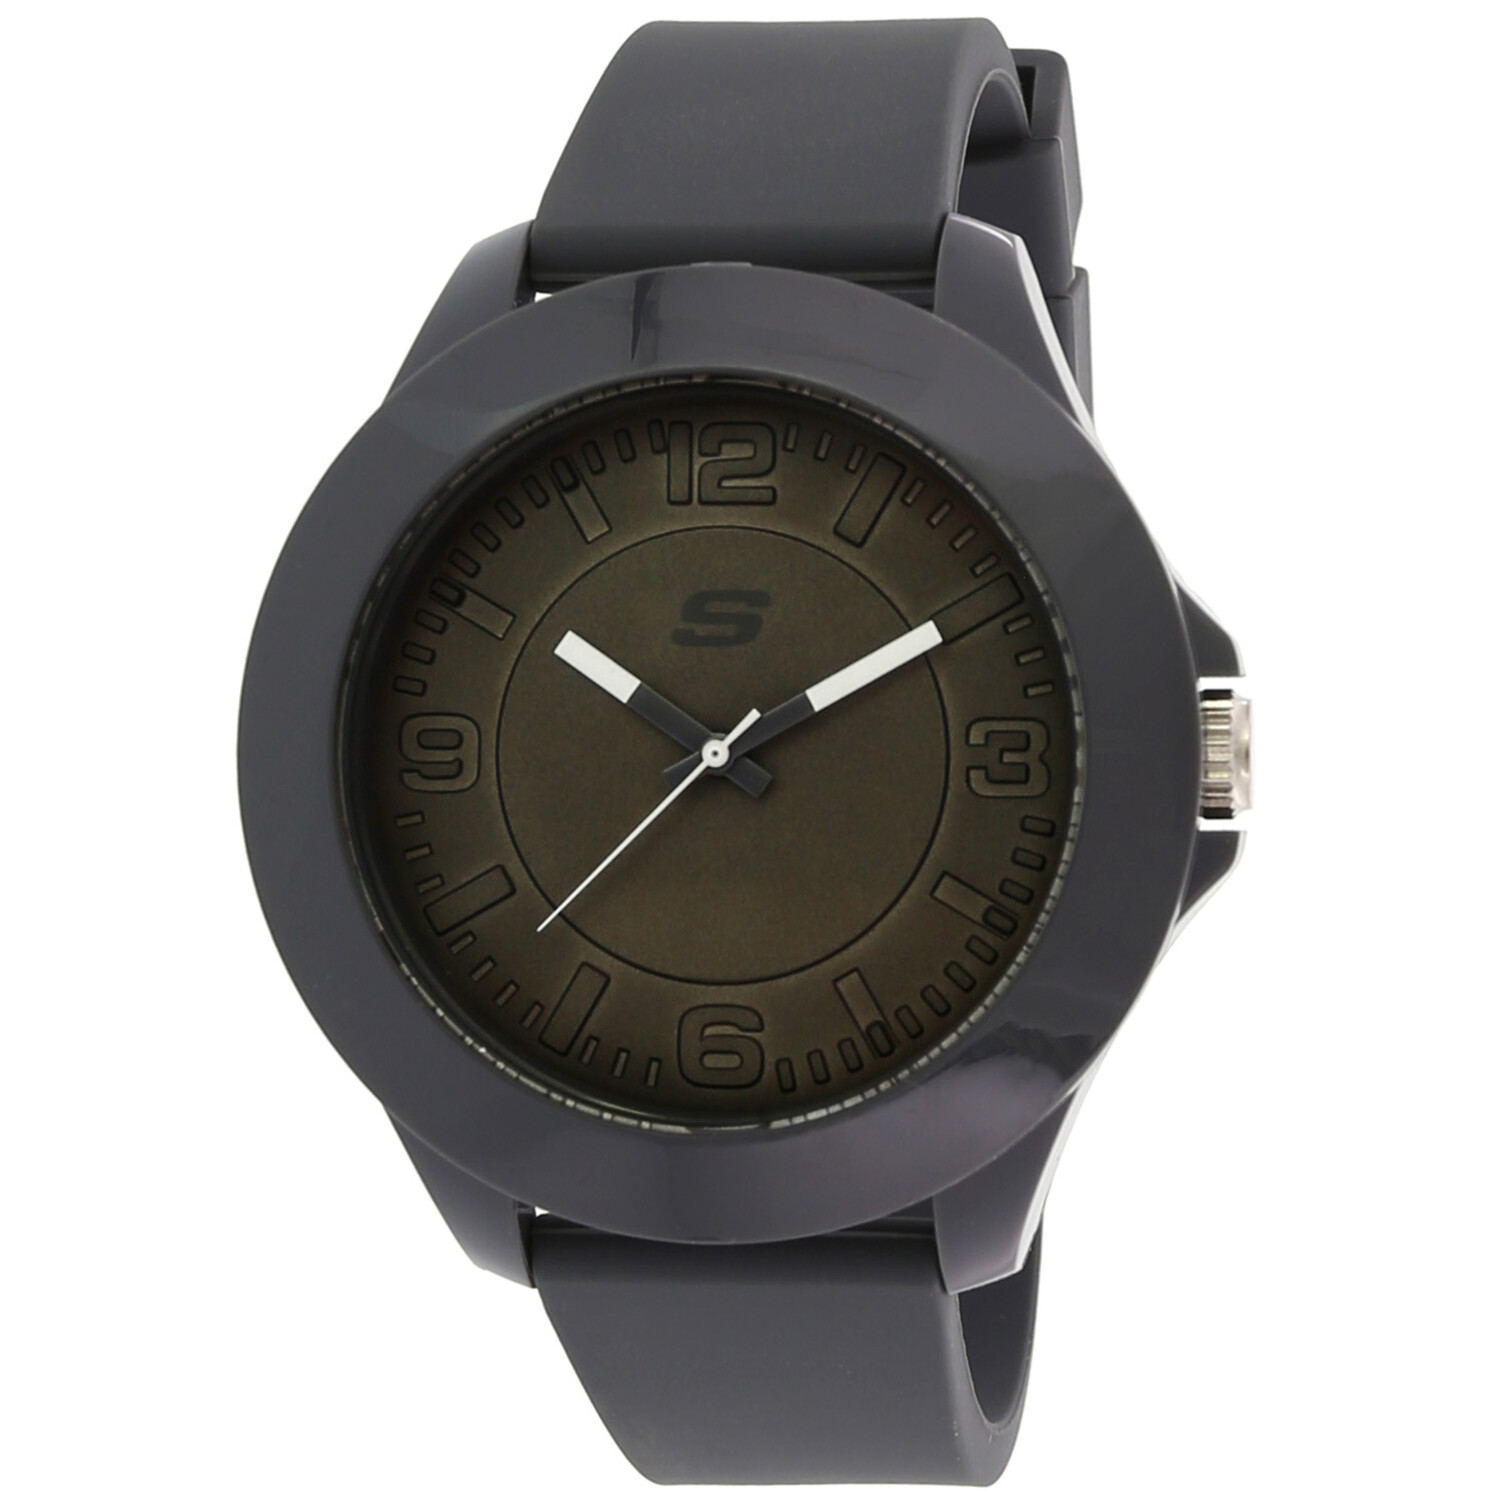 Skechers Watch SR5105 Rosencrans, Quartz Analog Display, Oversize, Water Resistant, Buckle Closure, Silicone Band, Gray